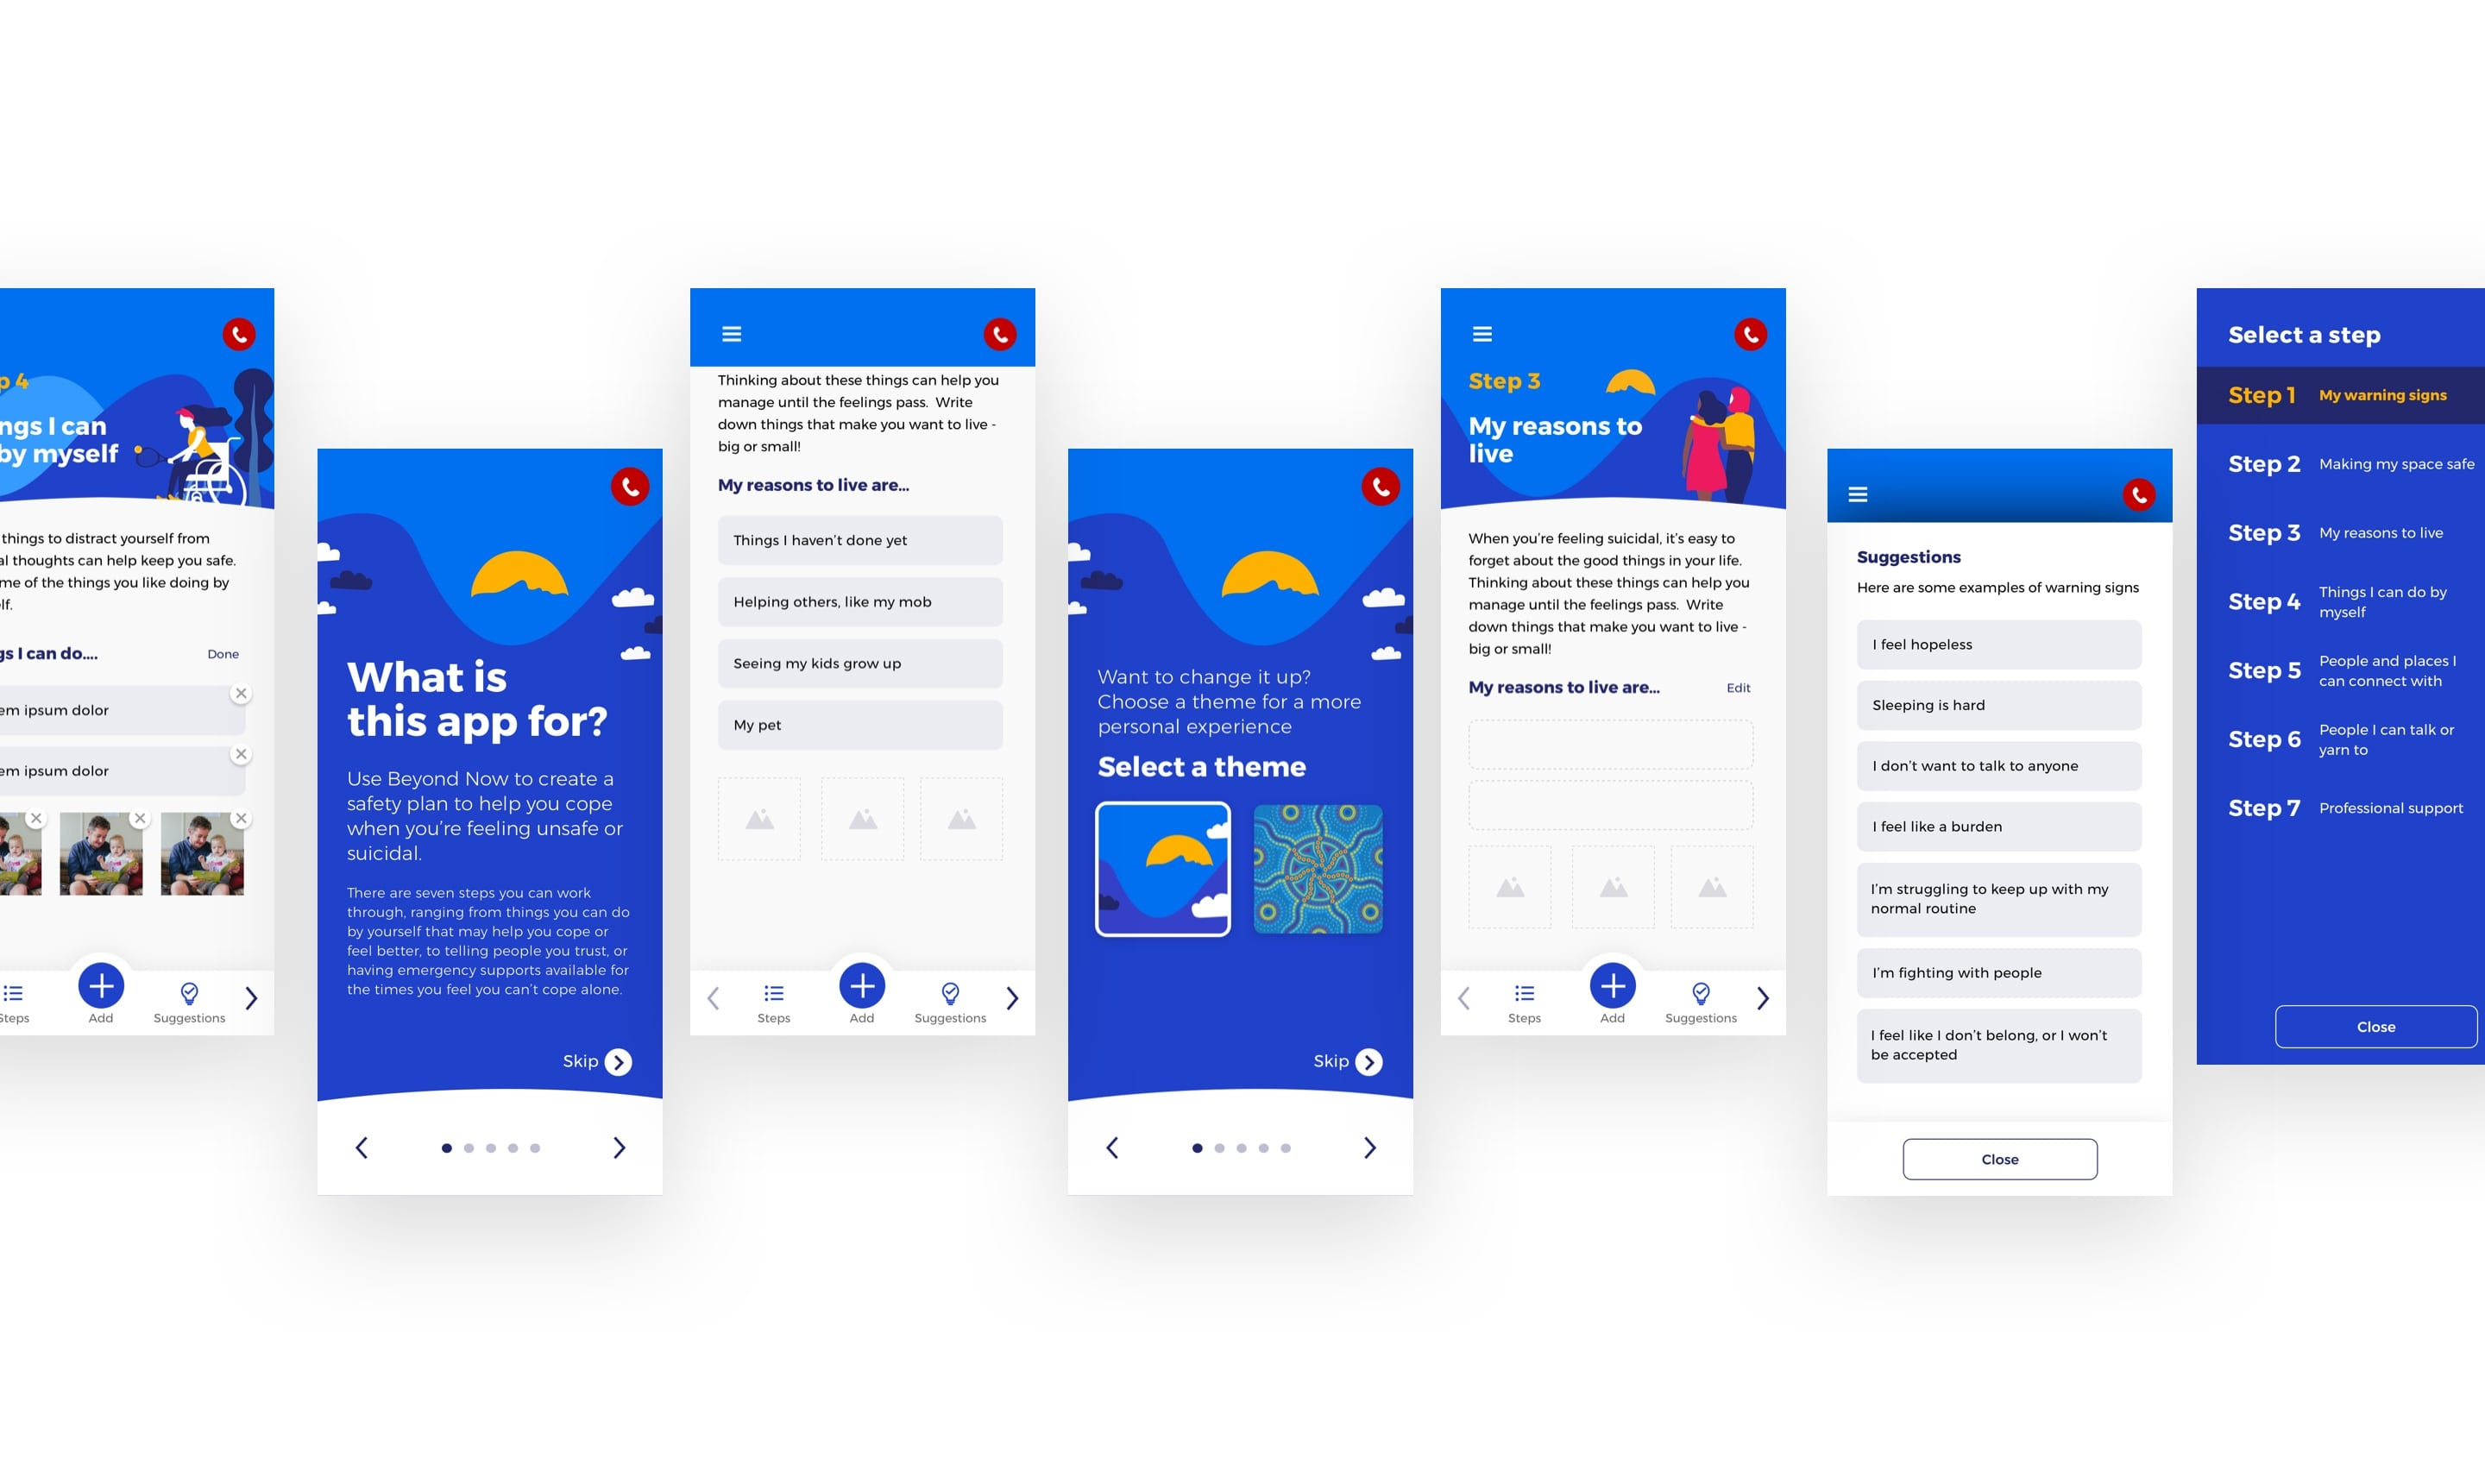 A variety of screens from the app